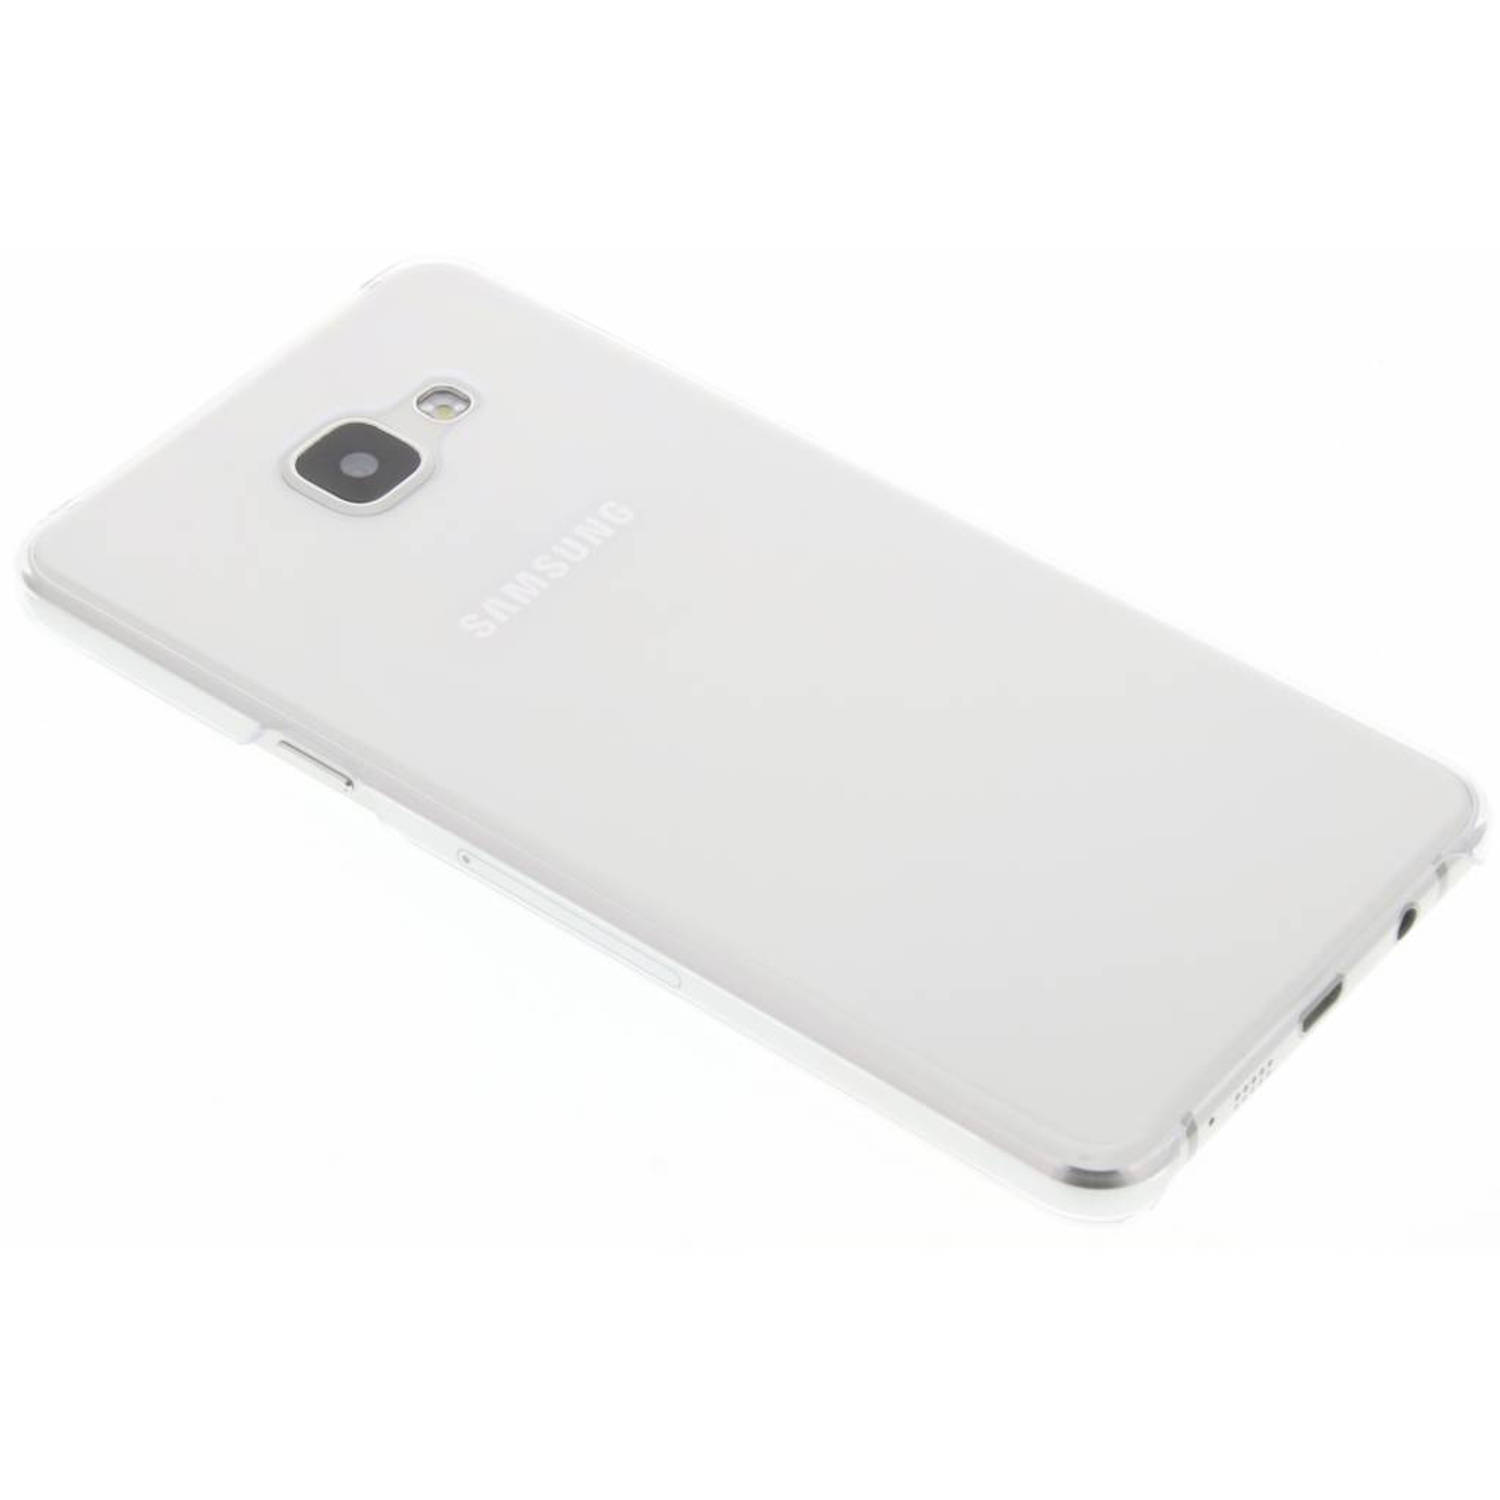 originele Slim Cover voor de Galaxy A5 (2016) - Transparant